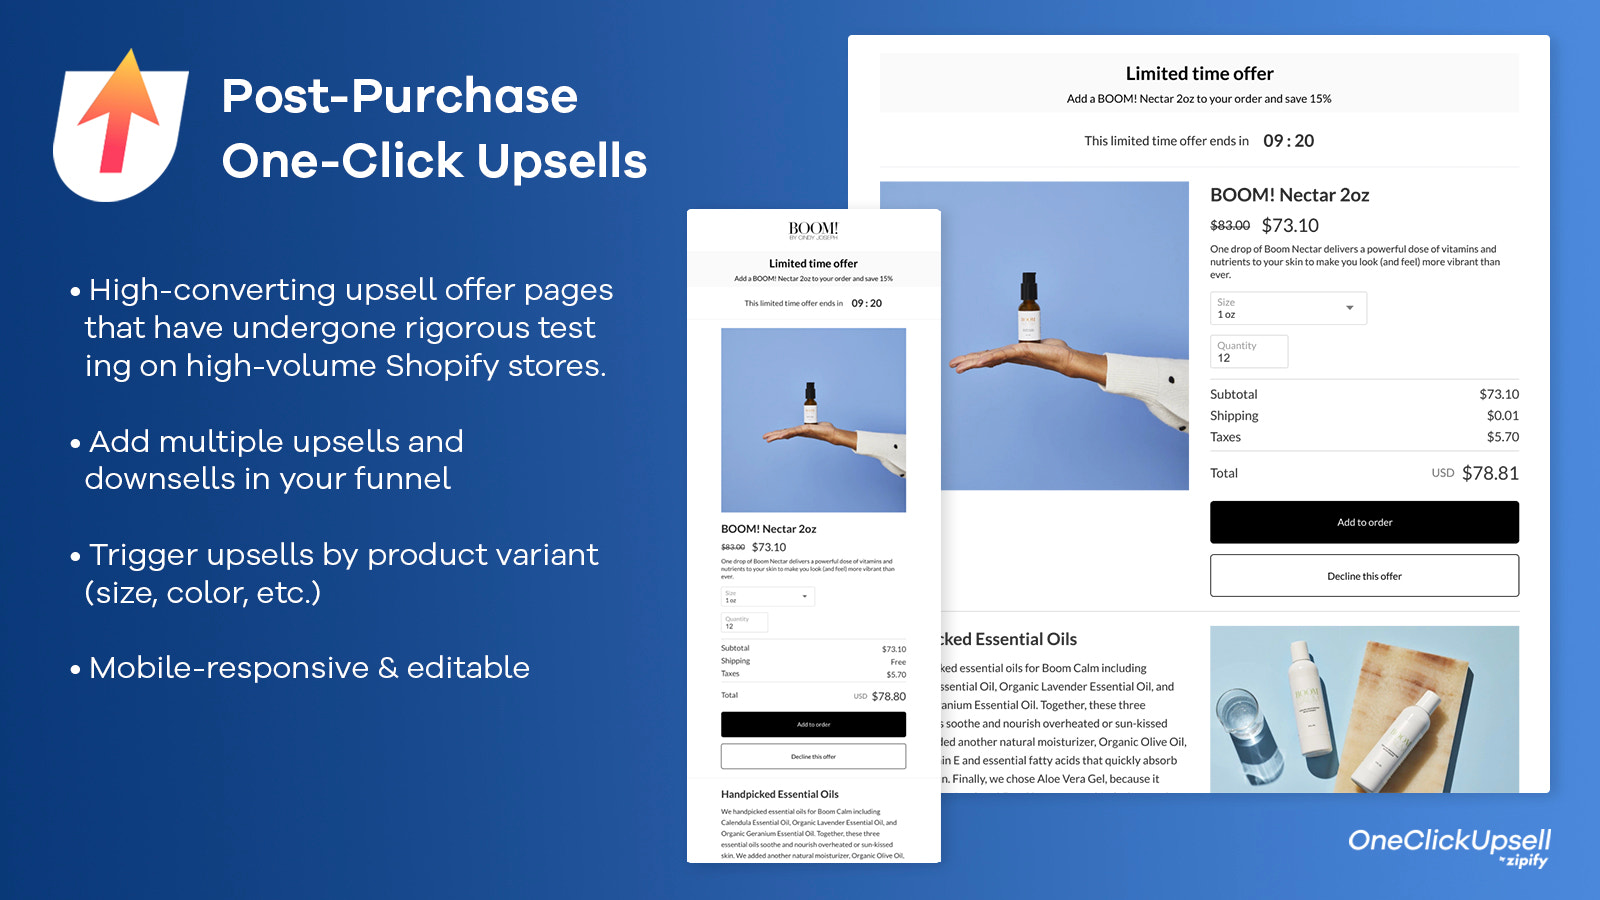 Post-Purchase One-Click Upsells